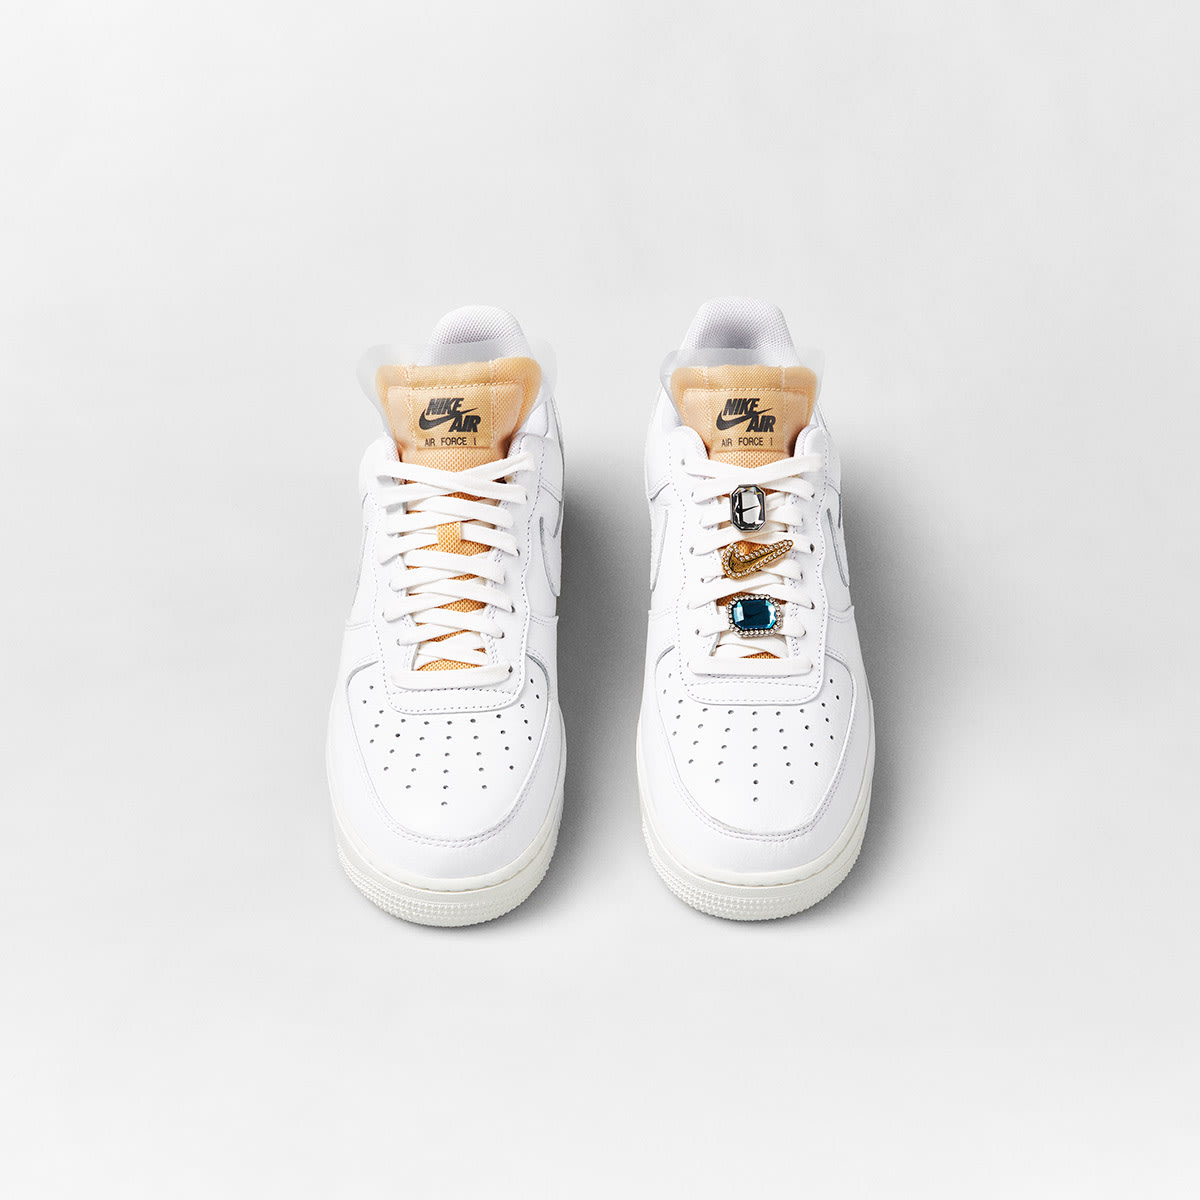 END. Features   Nike Air Force 1 '07 LX W - Register Now on END ...